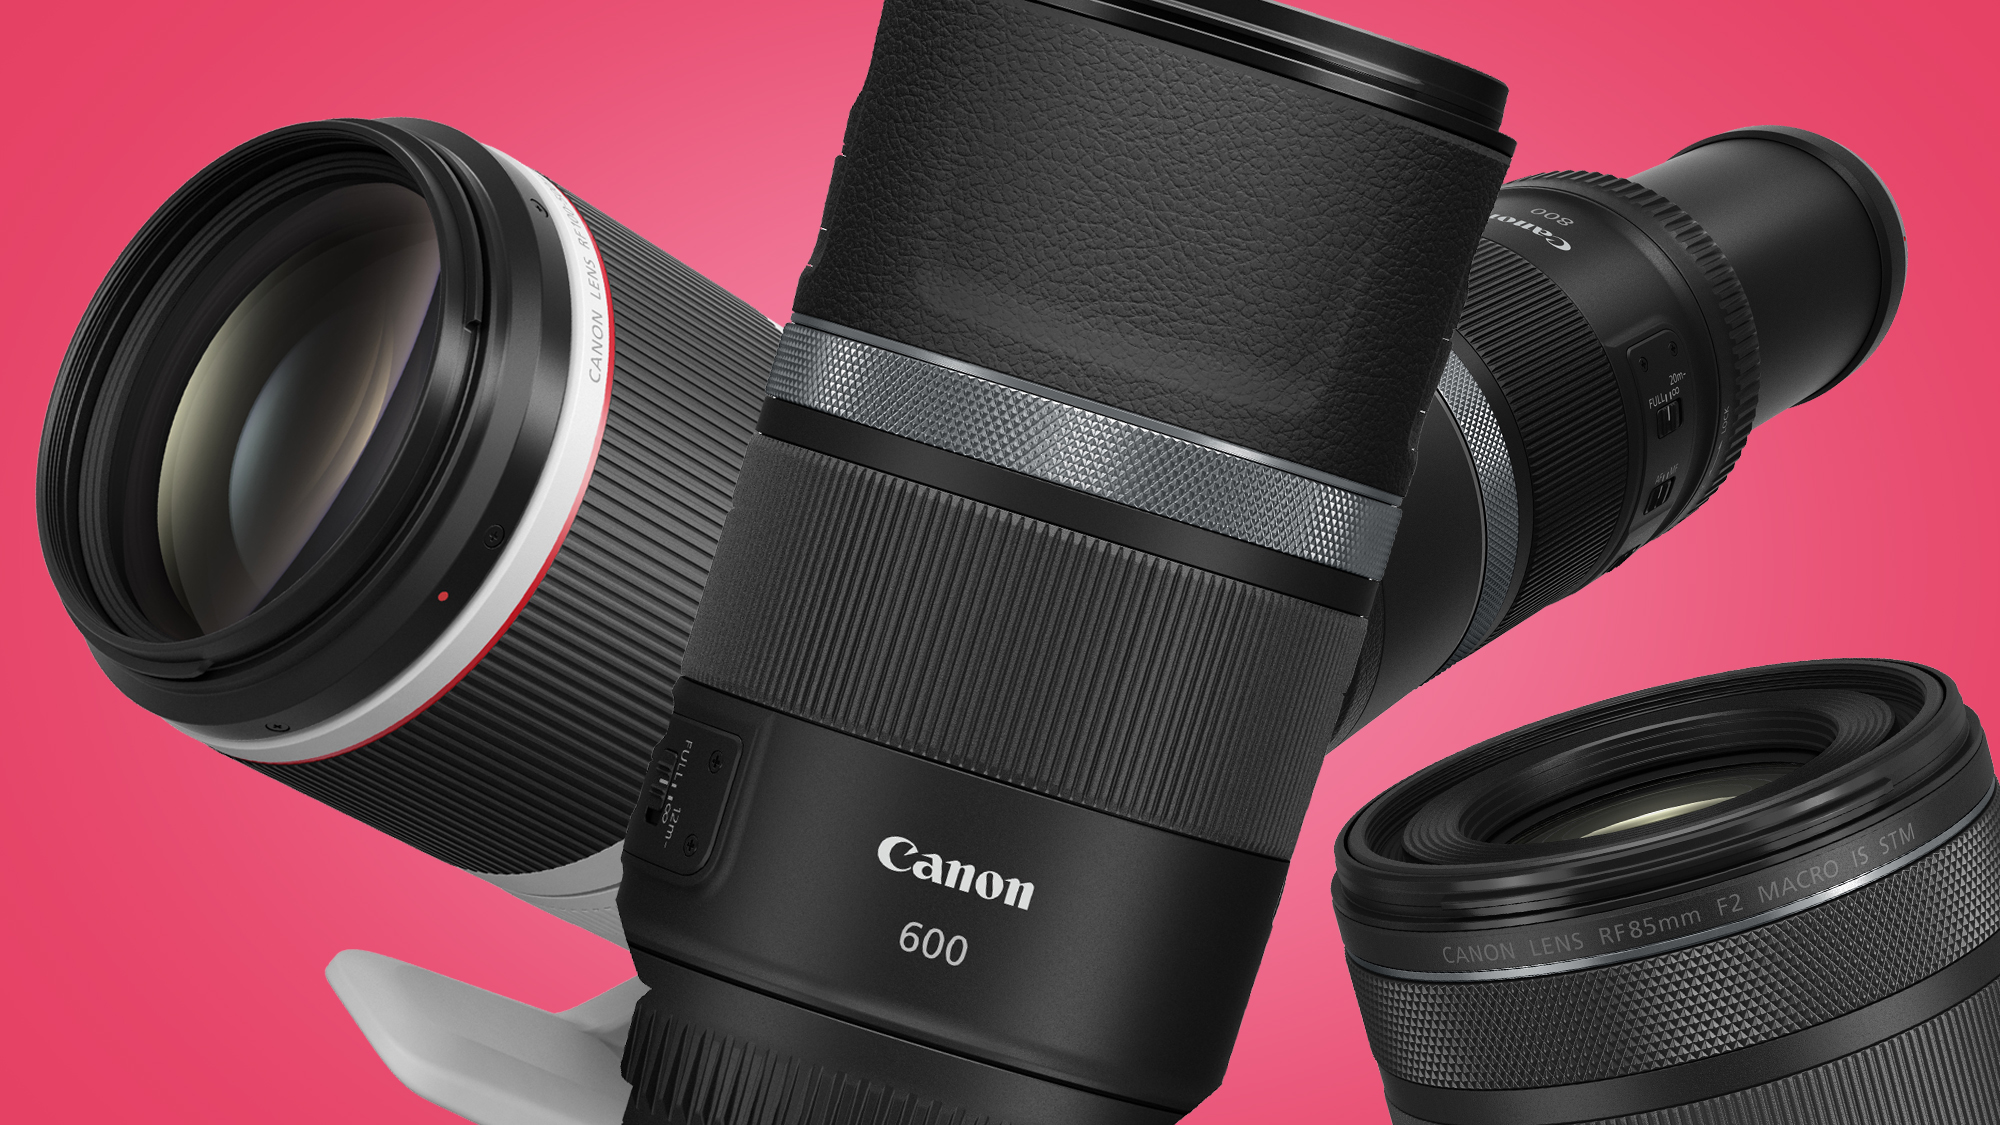 Canon announces four new RF lenses – here are our early hands-on thoughts